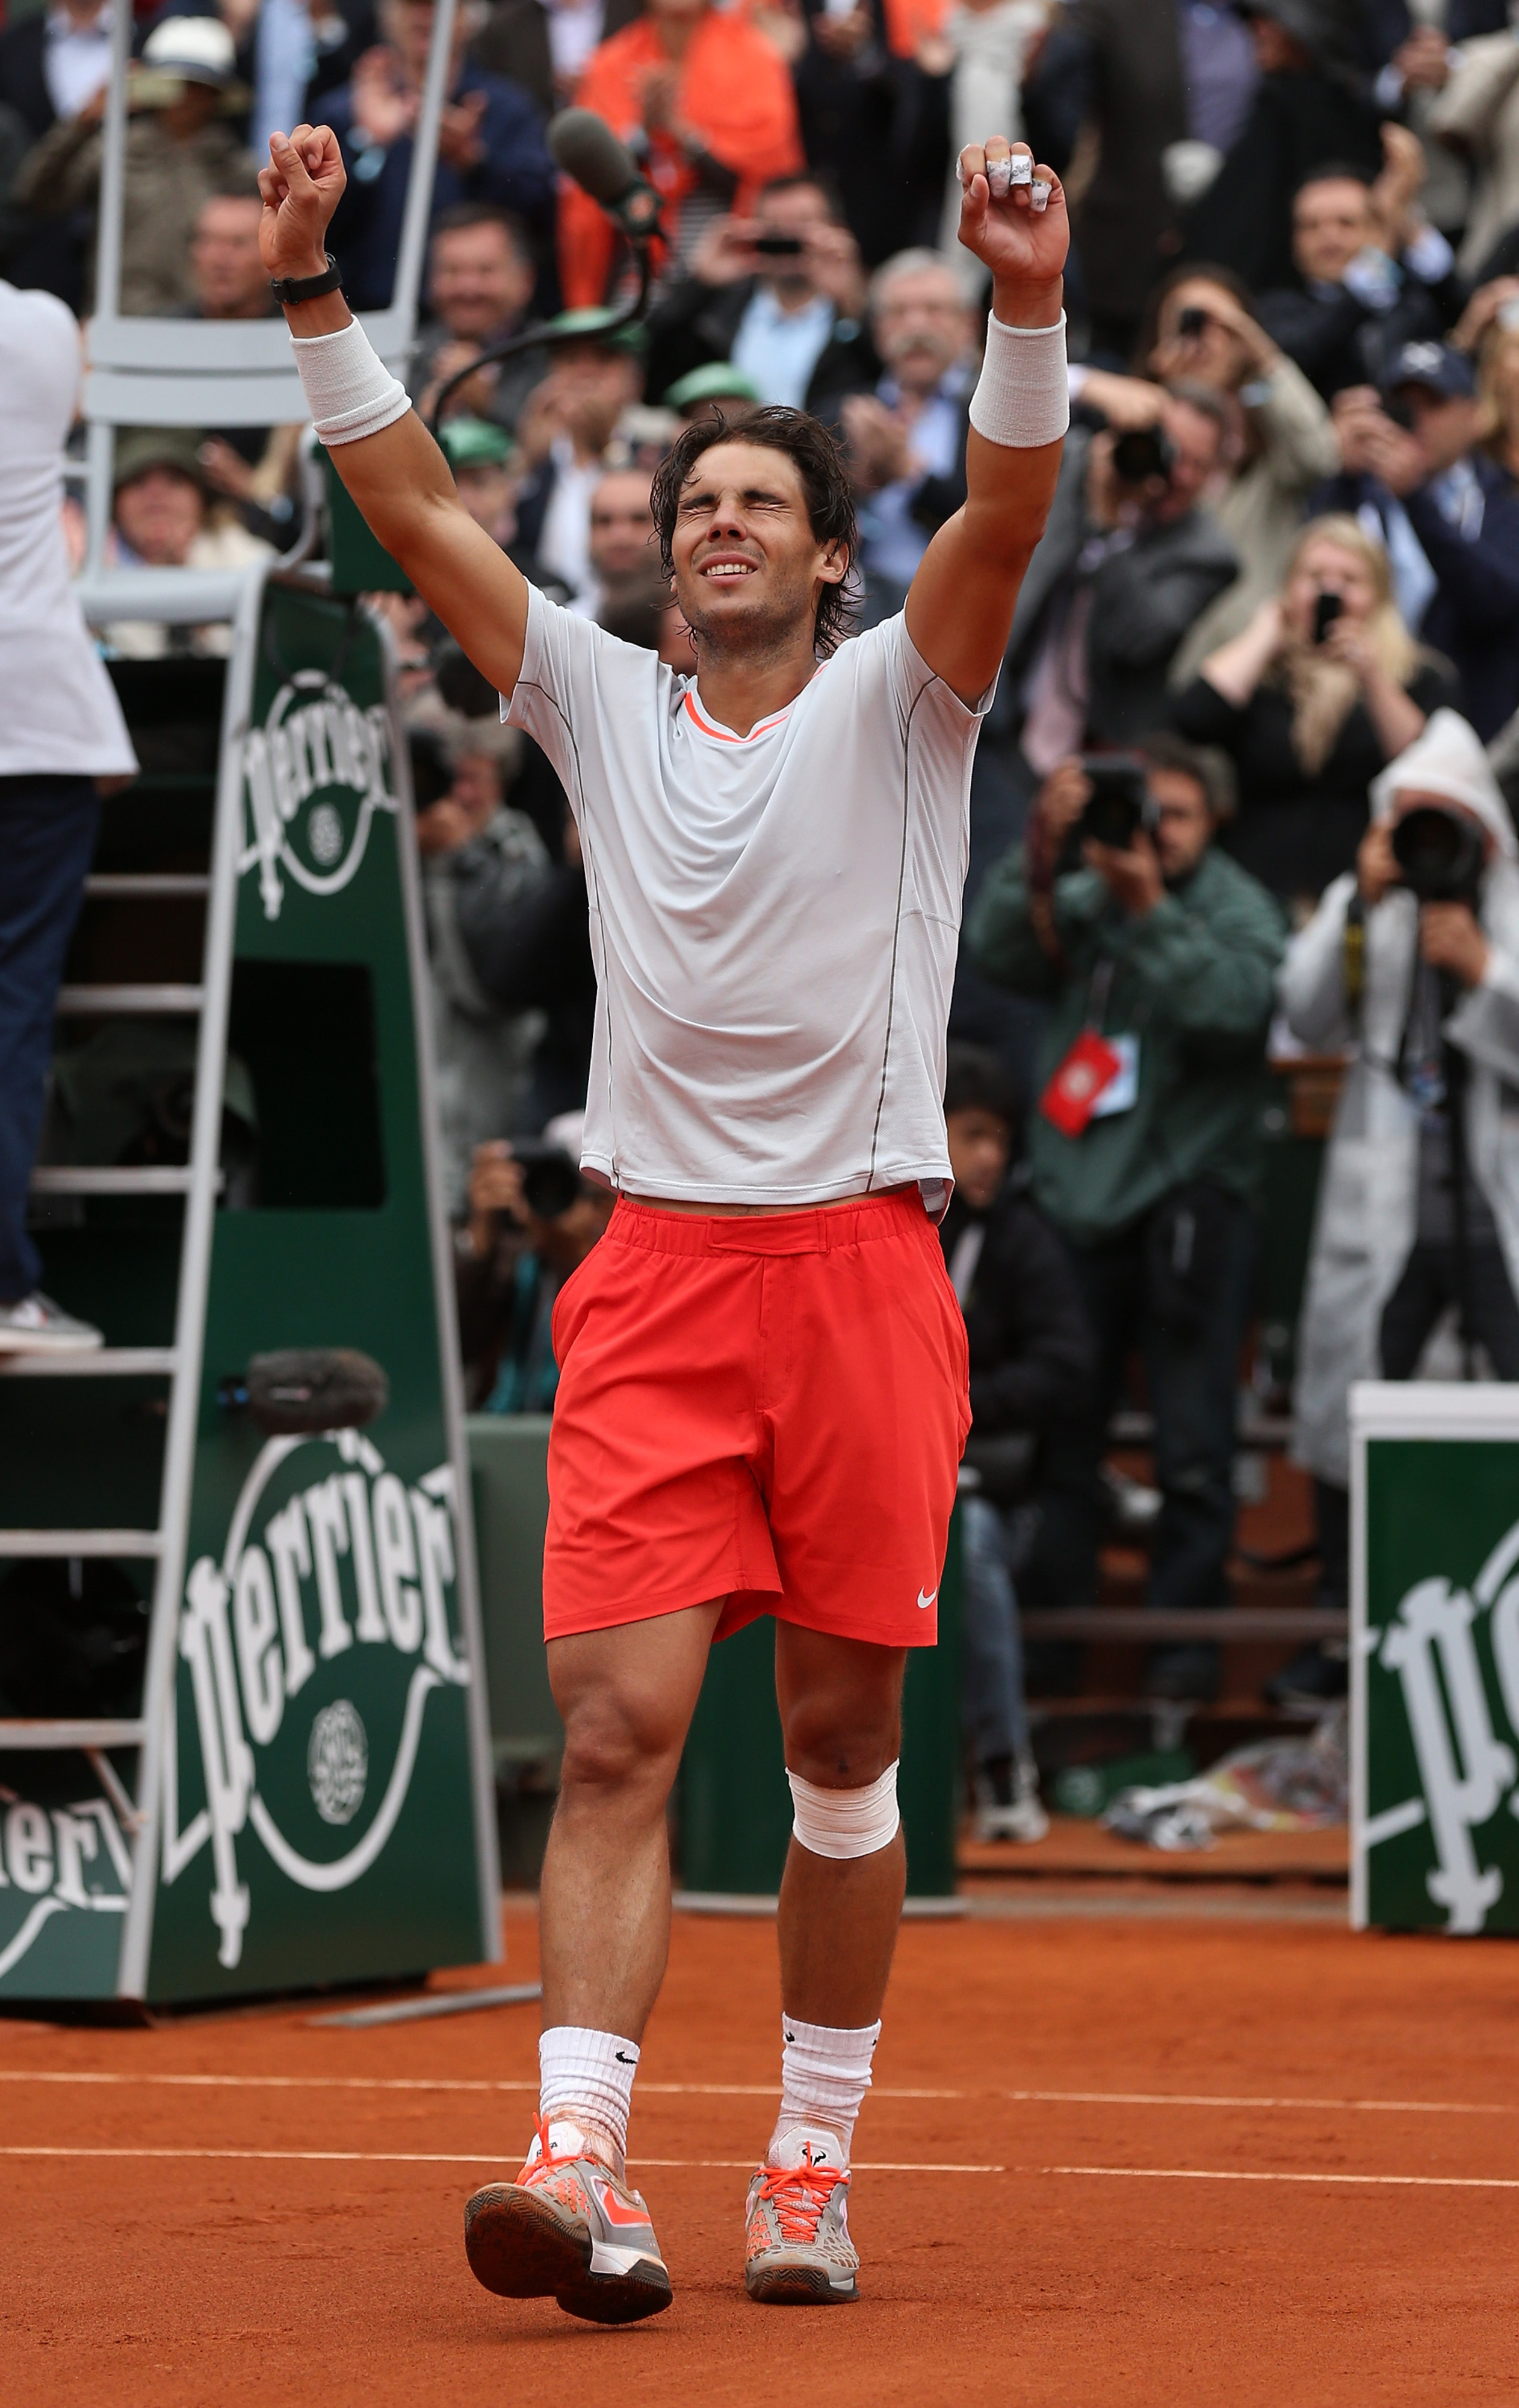 French Open results 2013: Rafael Nadal bests David Ferrer en route to 8th title at Roland Garros